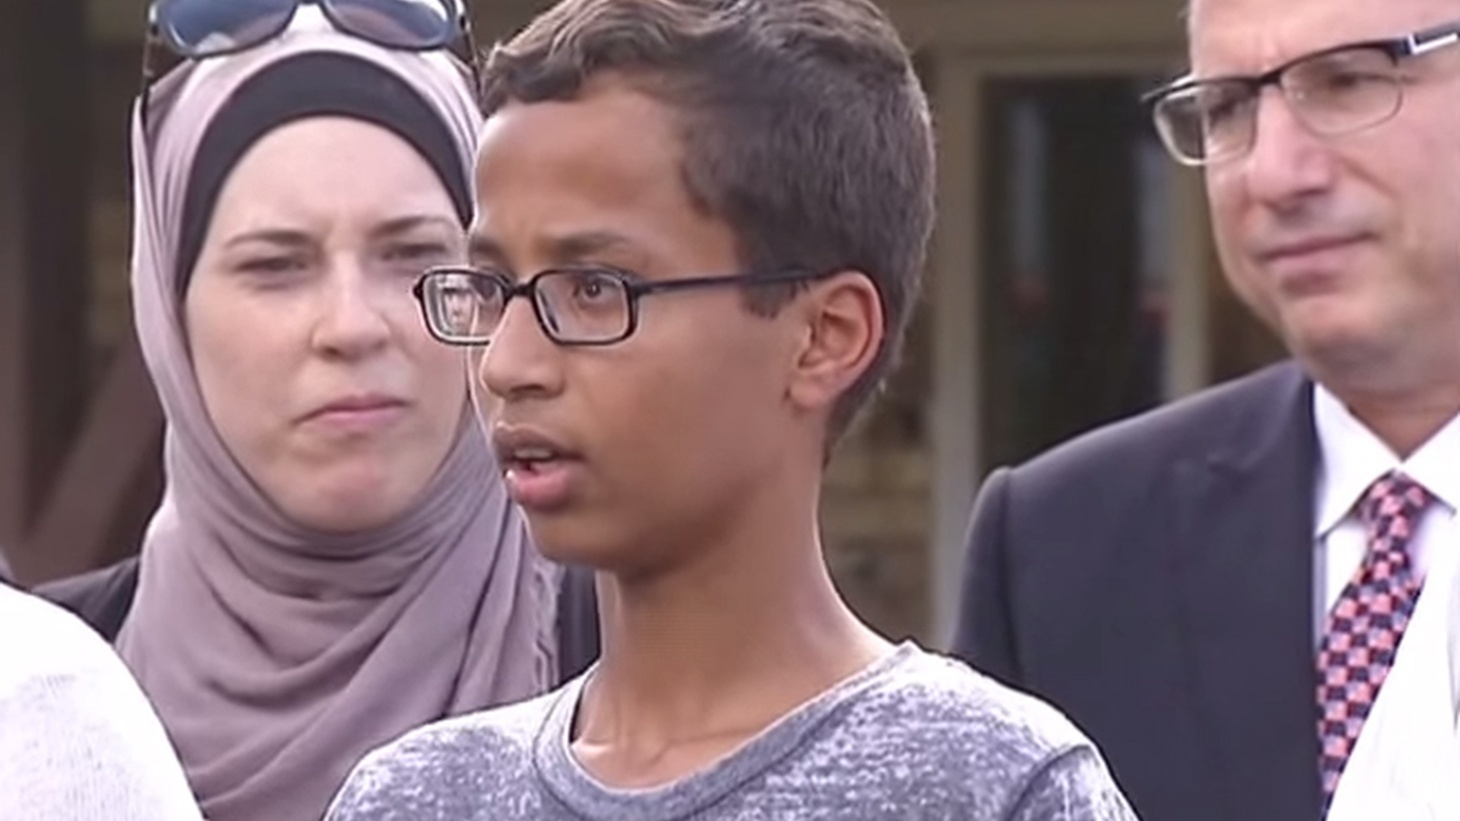 This week's arrest of a 14-year-old Muslim student whose home-made clock was mistaken for some kind of bomb raised the issue of Islamaphobia in America. Now it's become an issue in the presidential campaign.